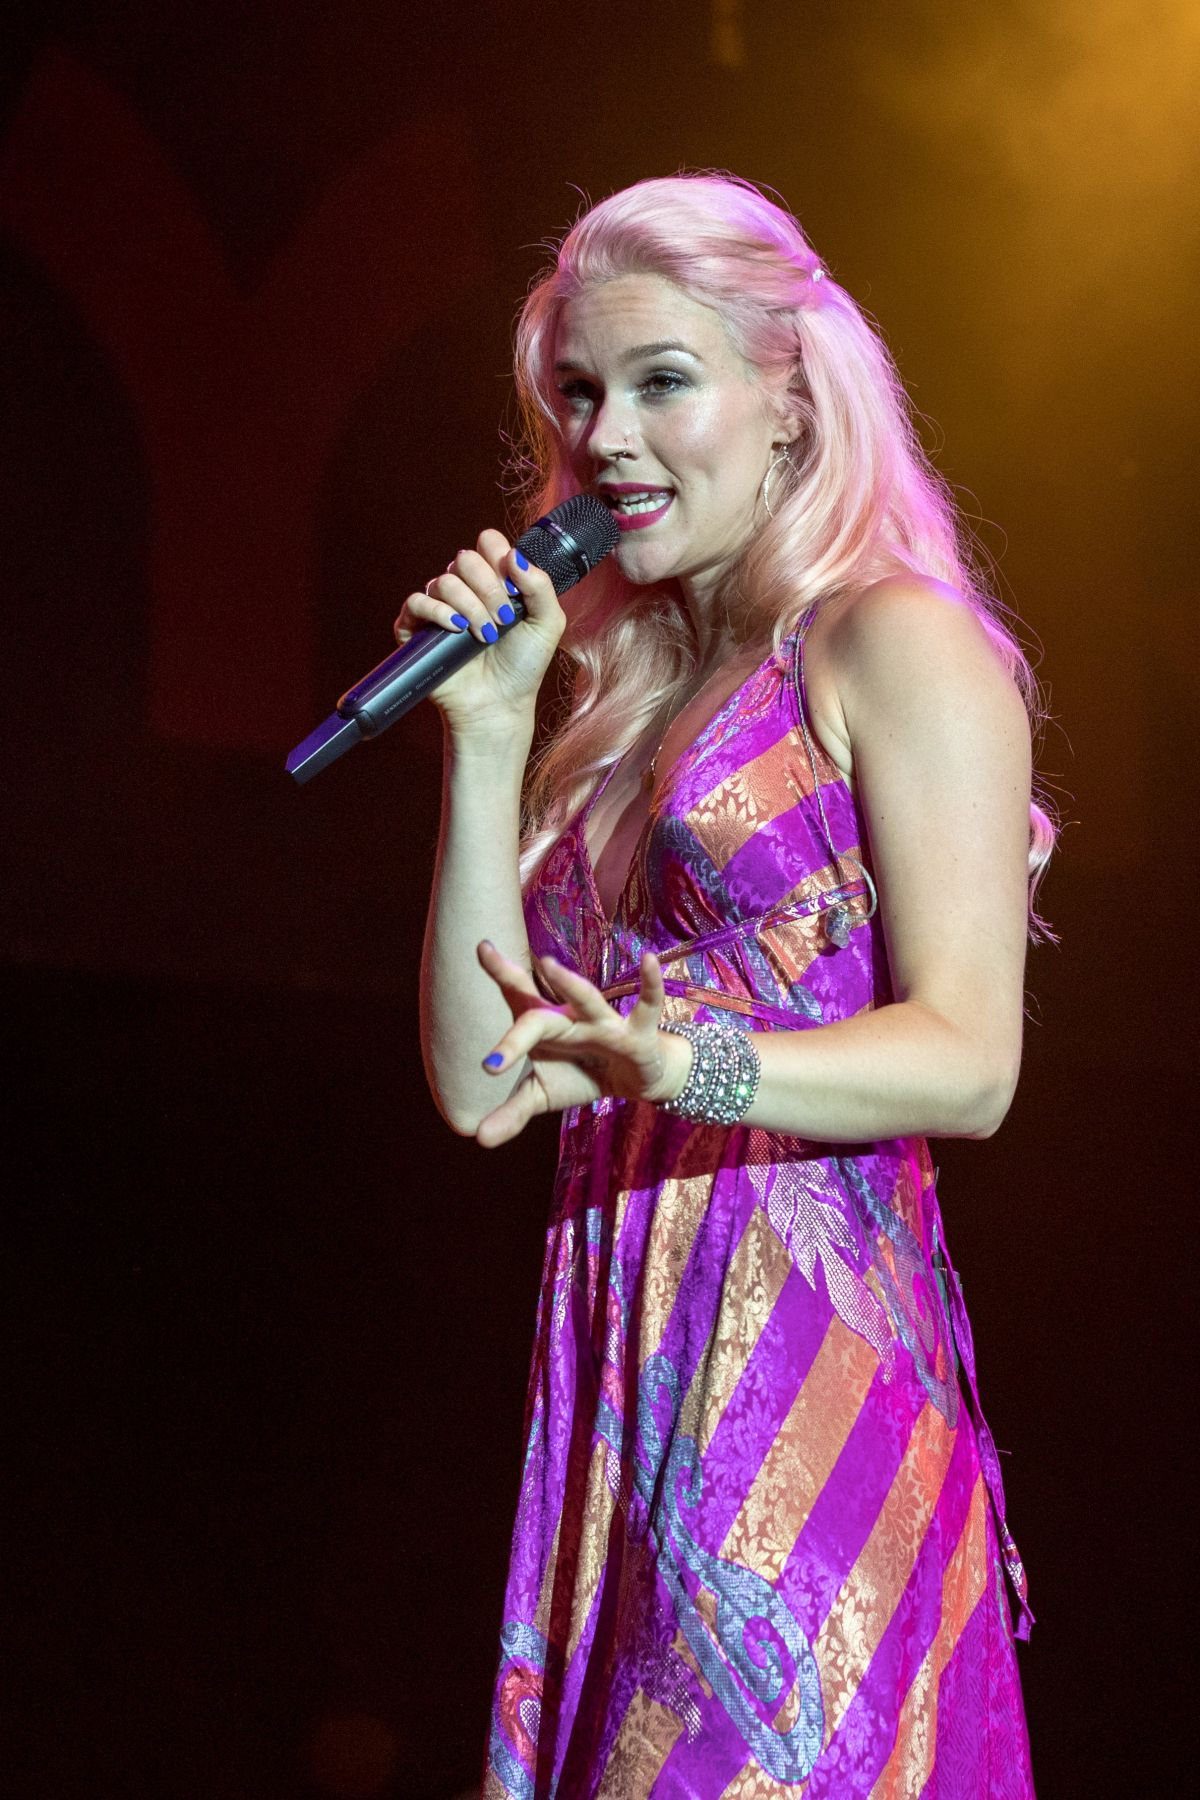 JOSS STONE Performs at Summerfest Music Festival 2017 in Milwaukee 06/30/2017